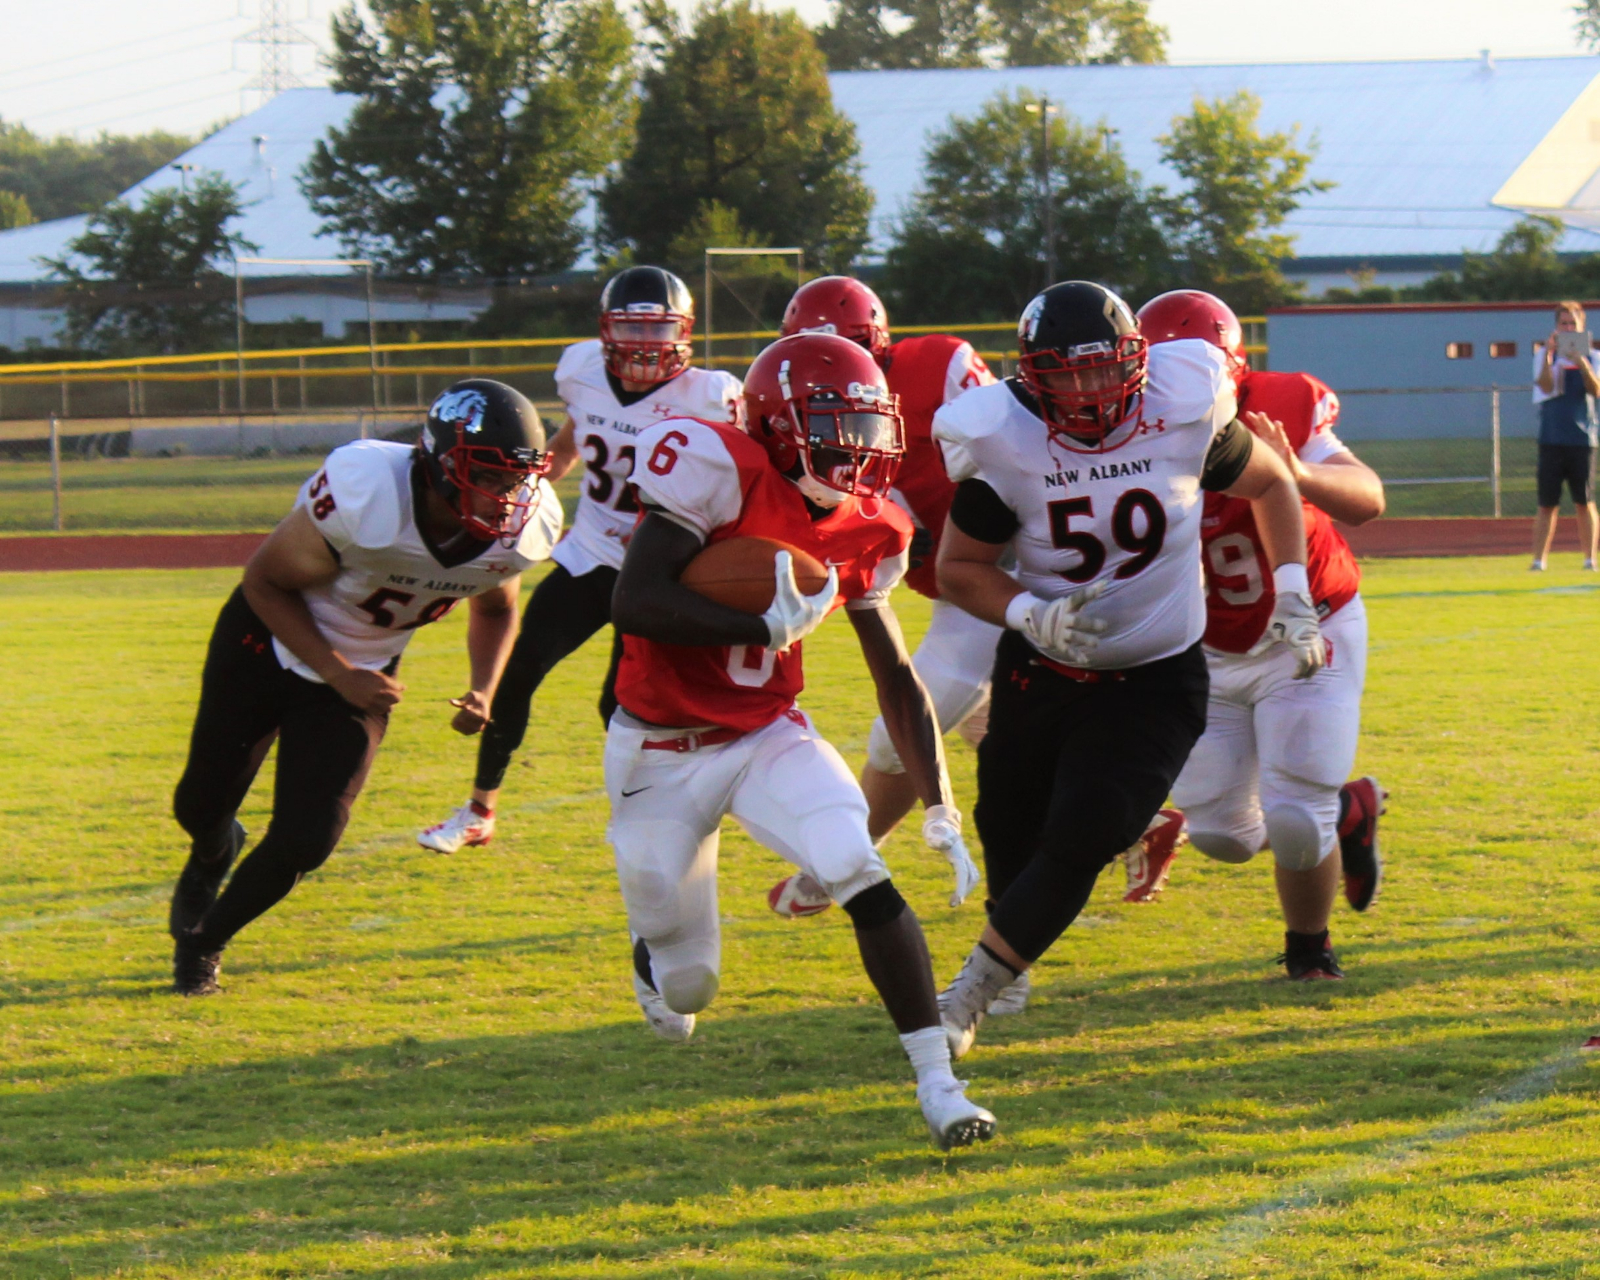 Red Devils Crush New Albany Bulldogs in Homecoming Matchup